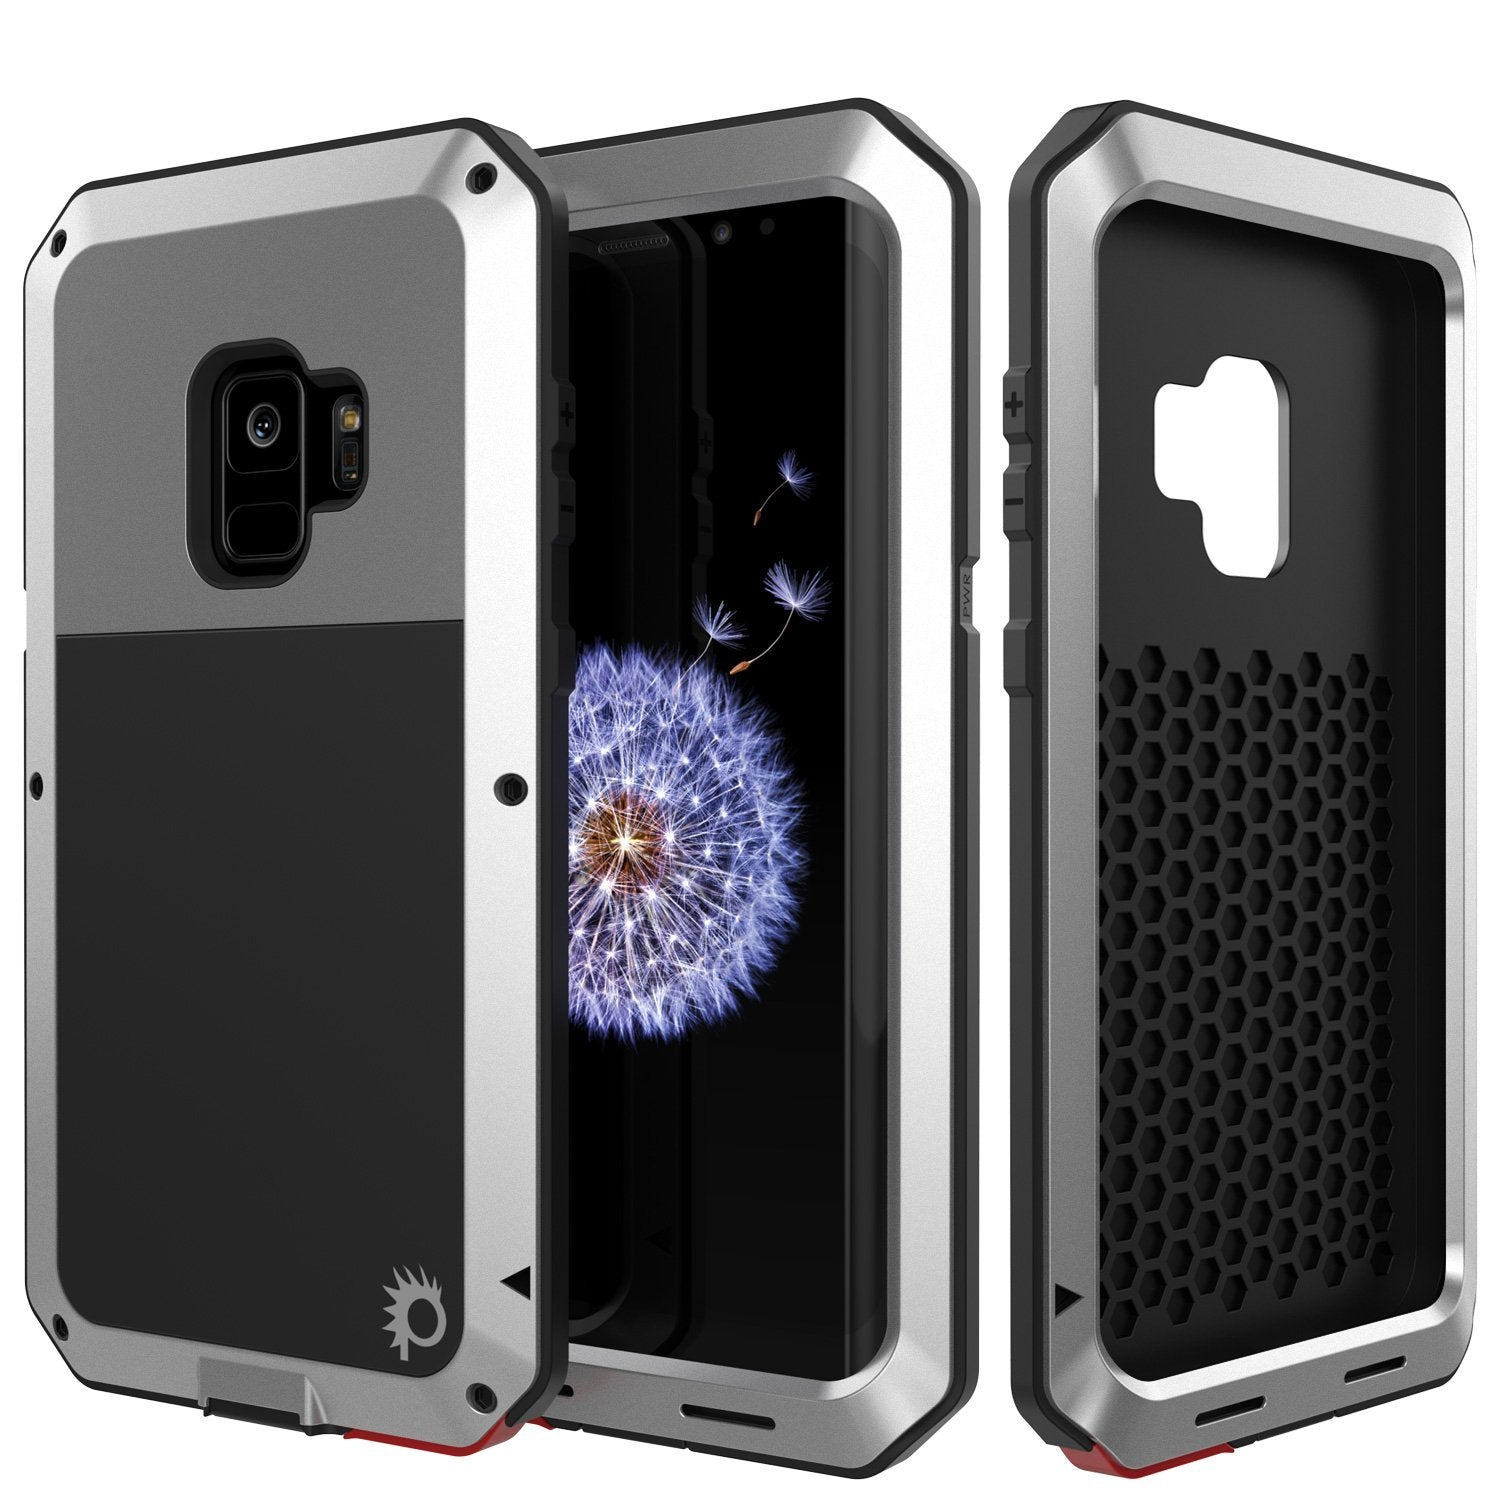 Galaxy S10e Metal Case, Heavy Duty Military Grade Rugged Armor Cover [Silver]